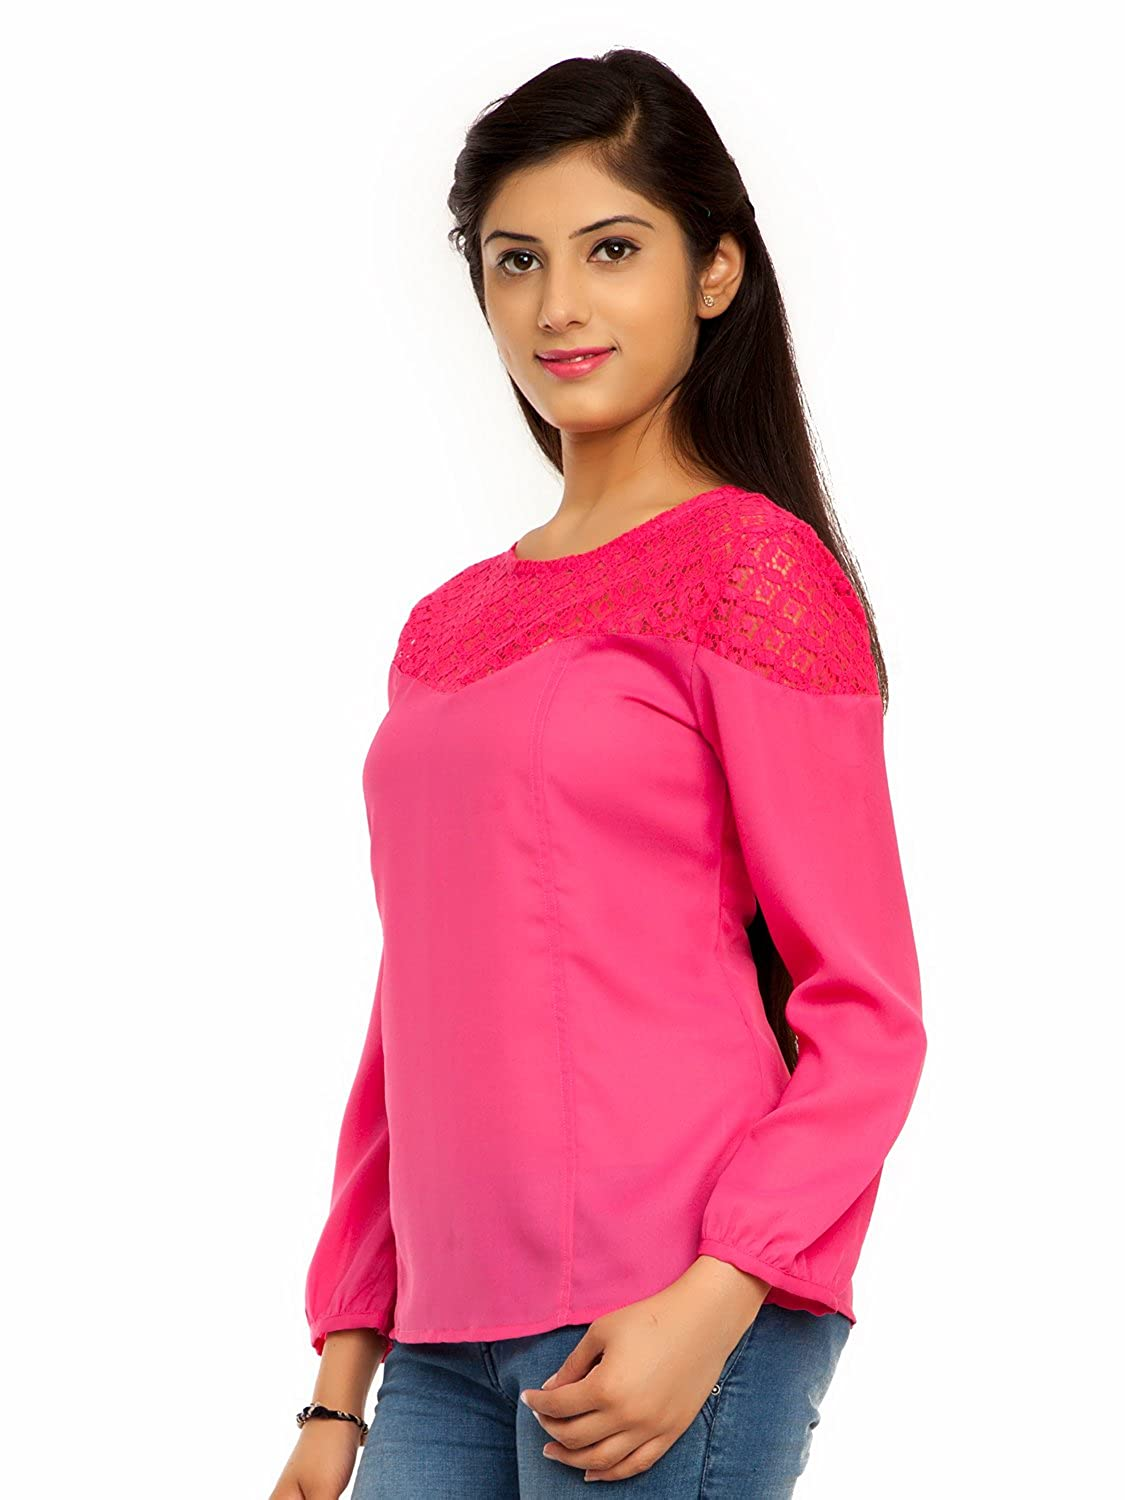 250591ccba2658 Femninora Women's Pink Color Lace Top: Amazon.in: Clothing & Accessories